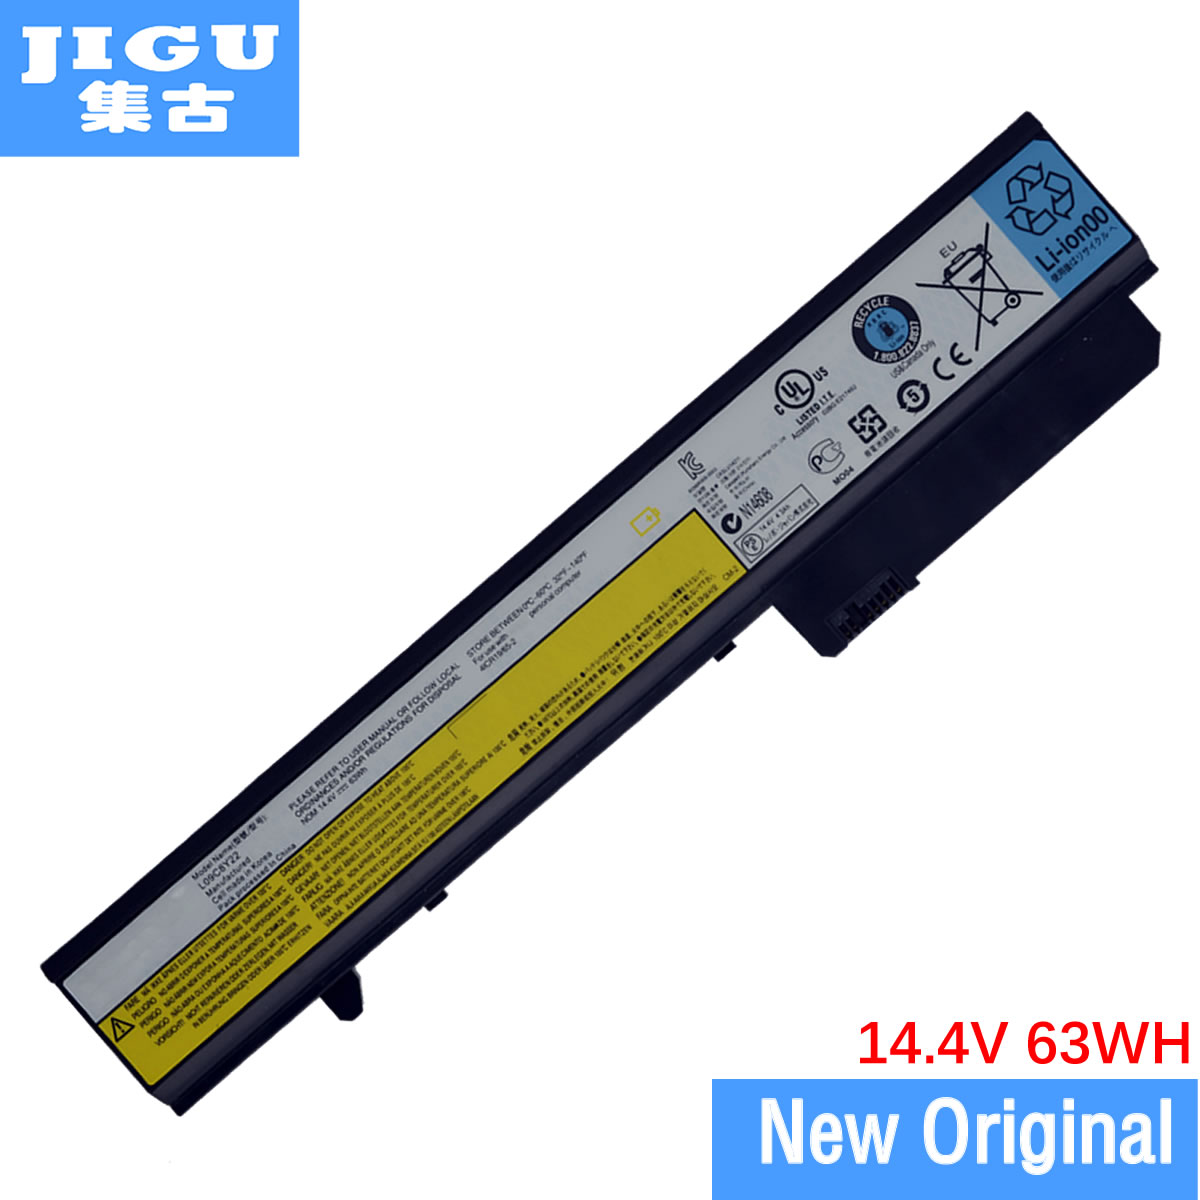 все цены на JIGU L09N8T22 L09N8Y22 L09P8Y22 LO9P8Y22 Original Laptop Battery For Lenovo IdeaPad U460 14.4V 63WH онлайн